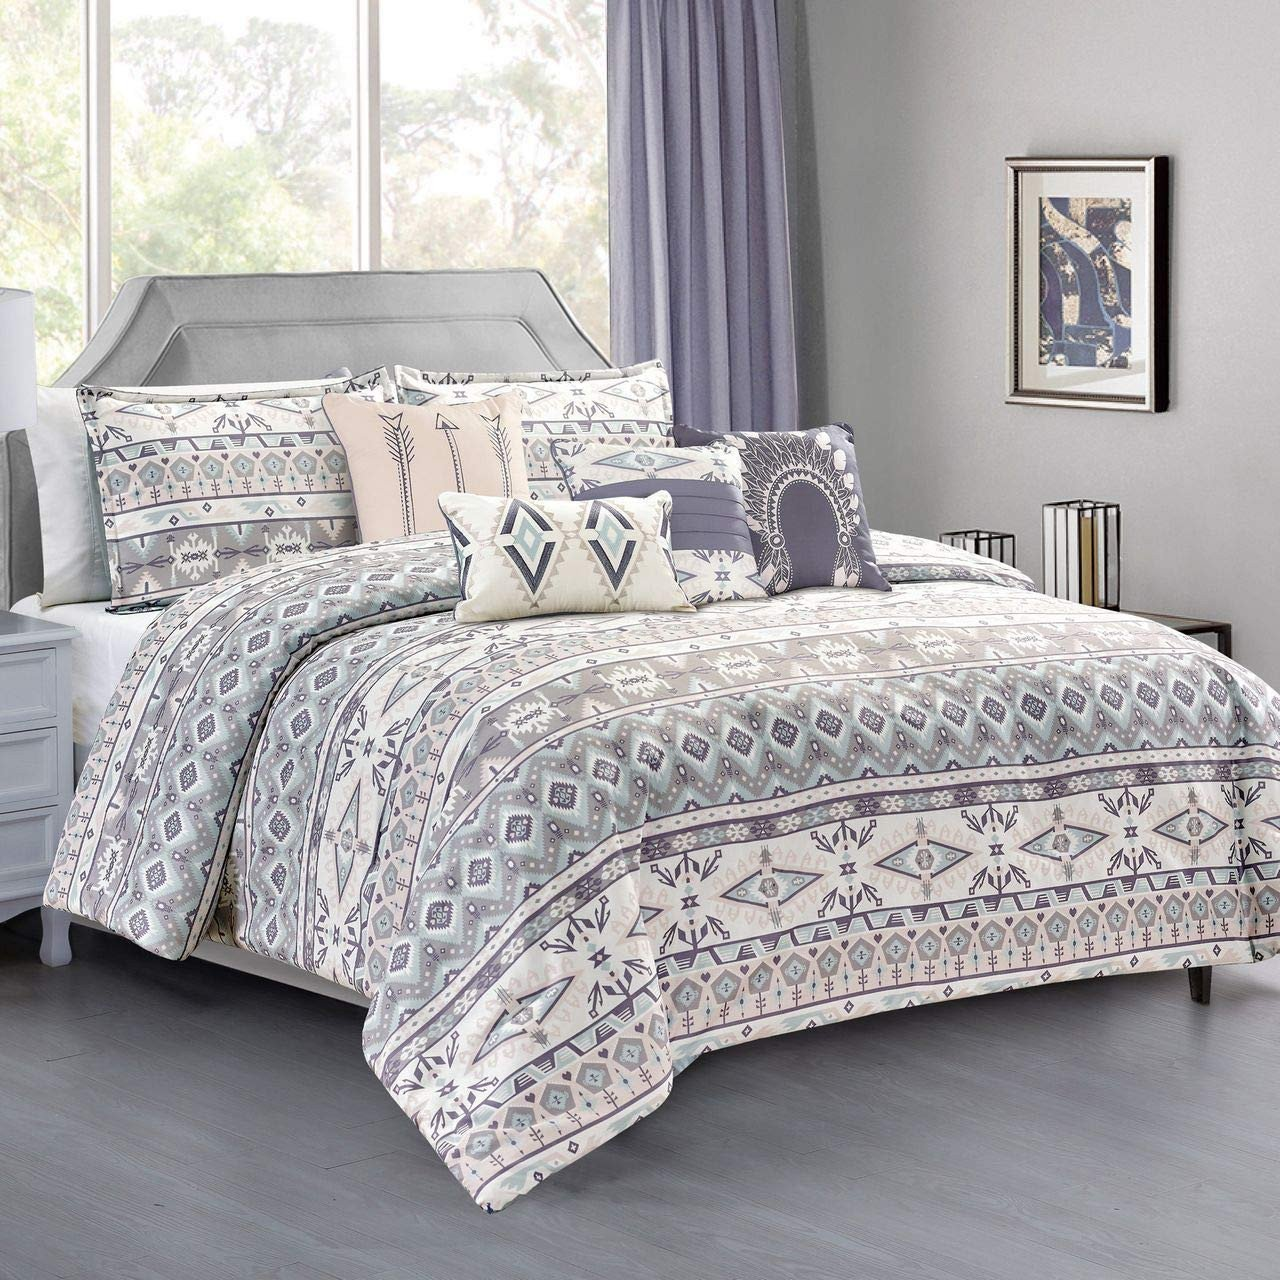 7 Piece Bedroom Set Queen Fresh Kinglinen 7 Piece Yvonne forter Set Queen